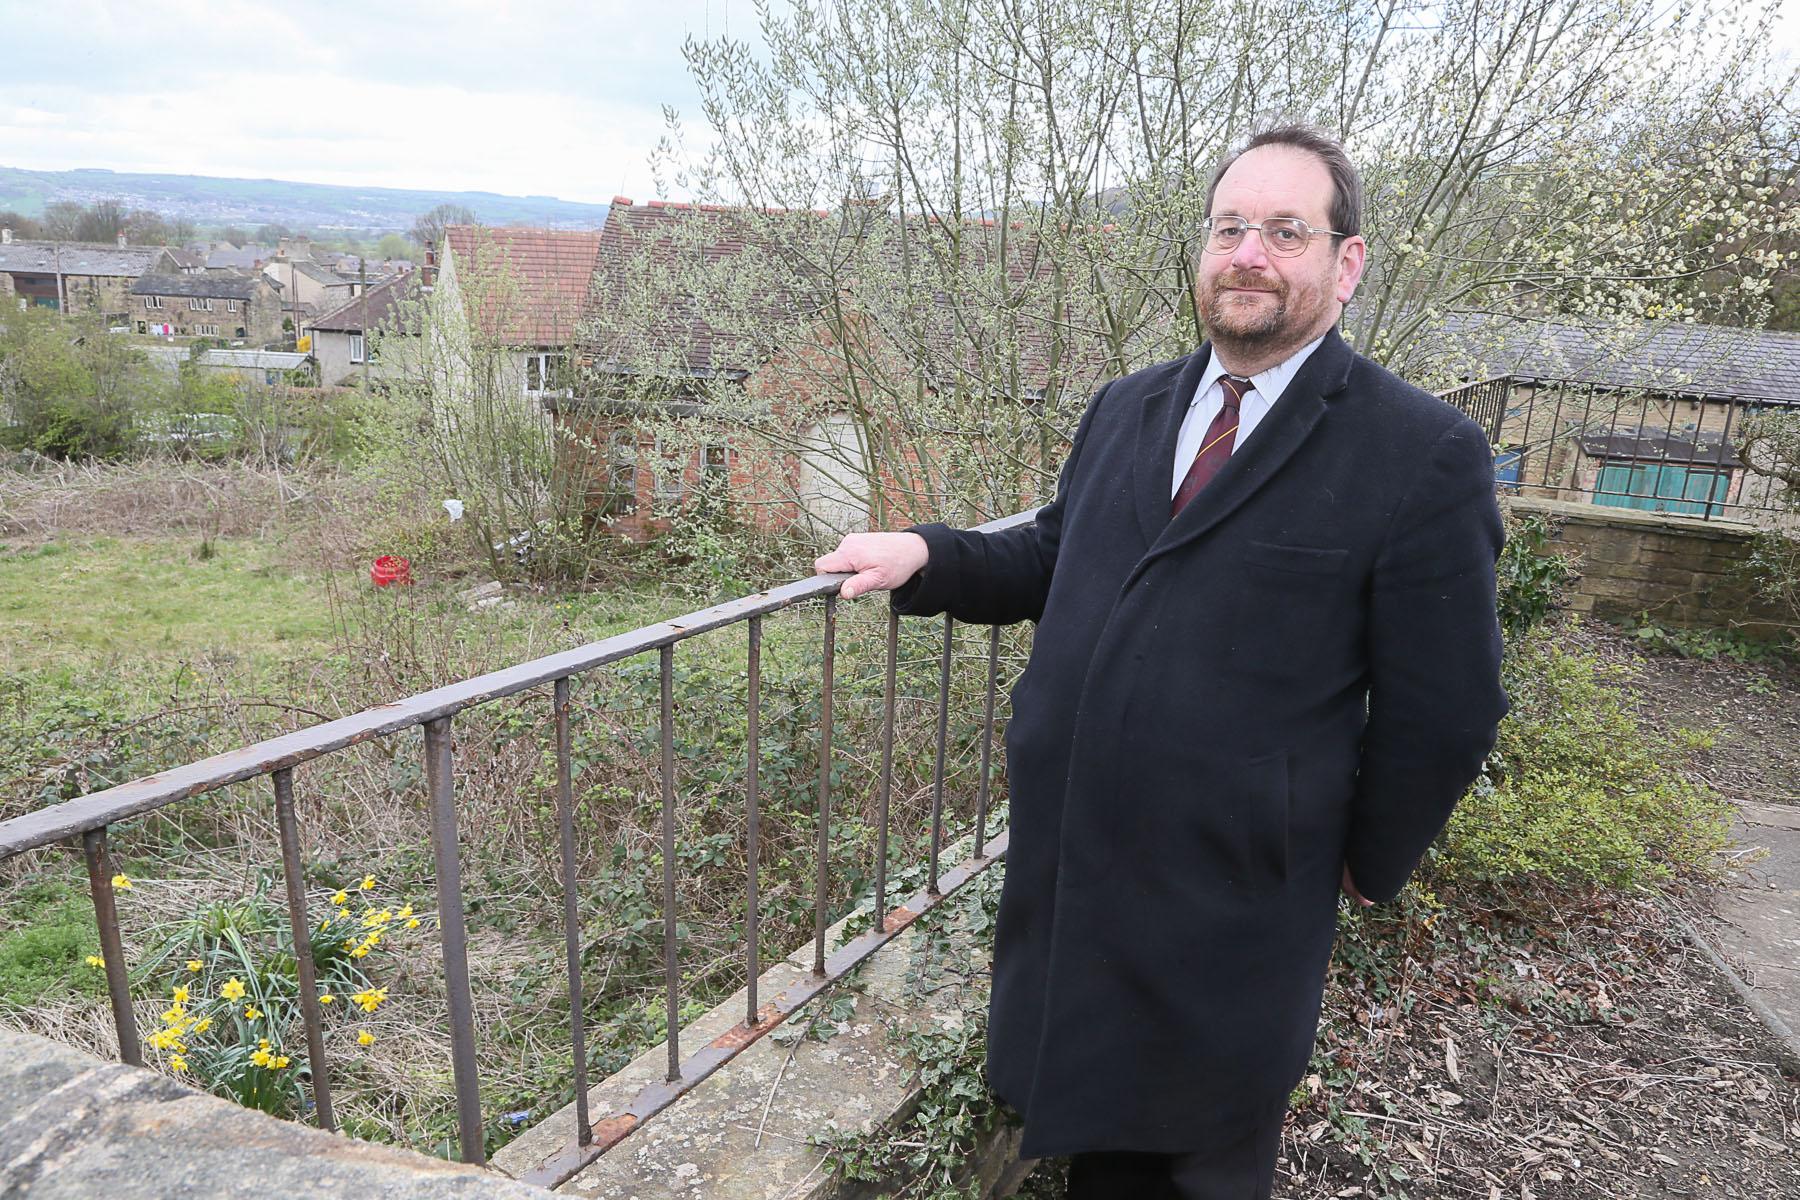 Councillor Keith Dredge at the site next to Utley Cemetery, where approval has been given for new houses to be built